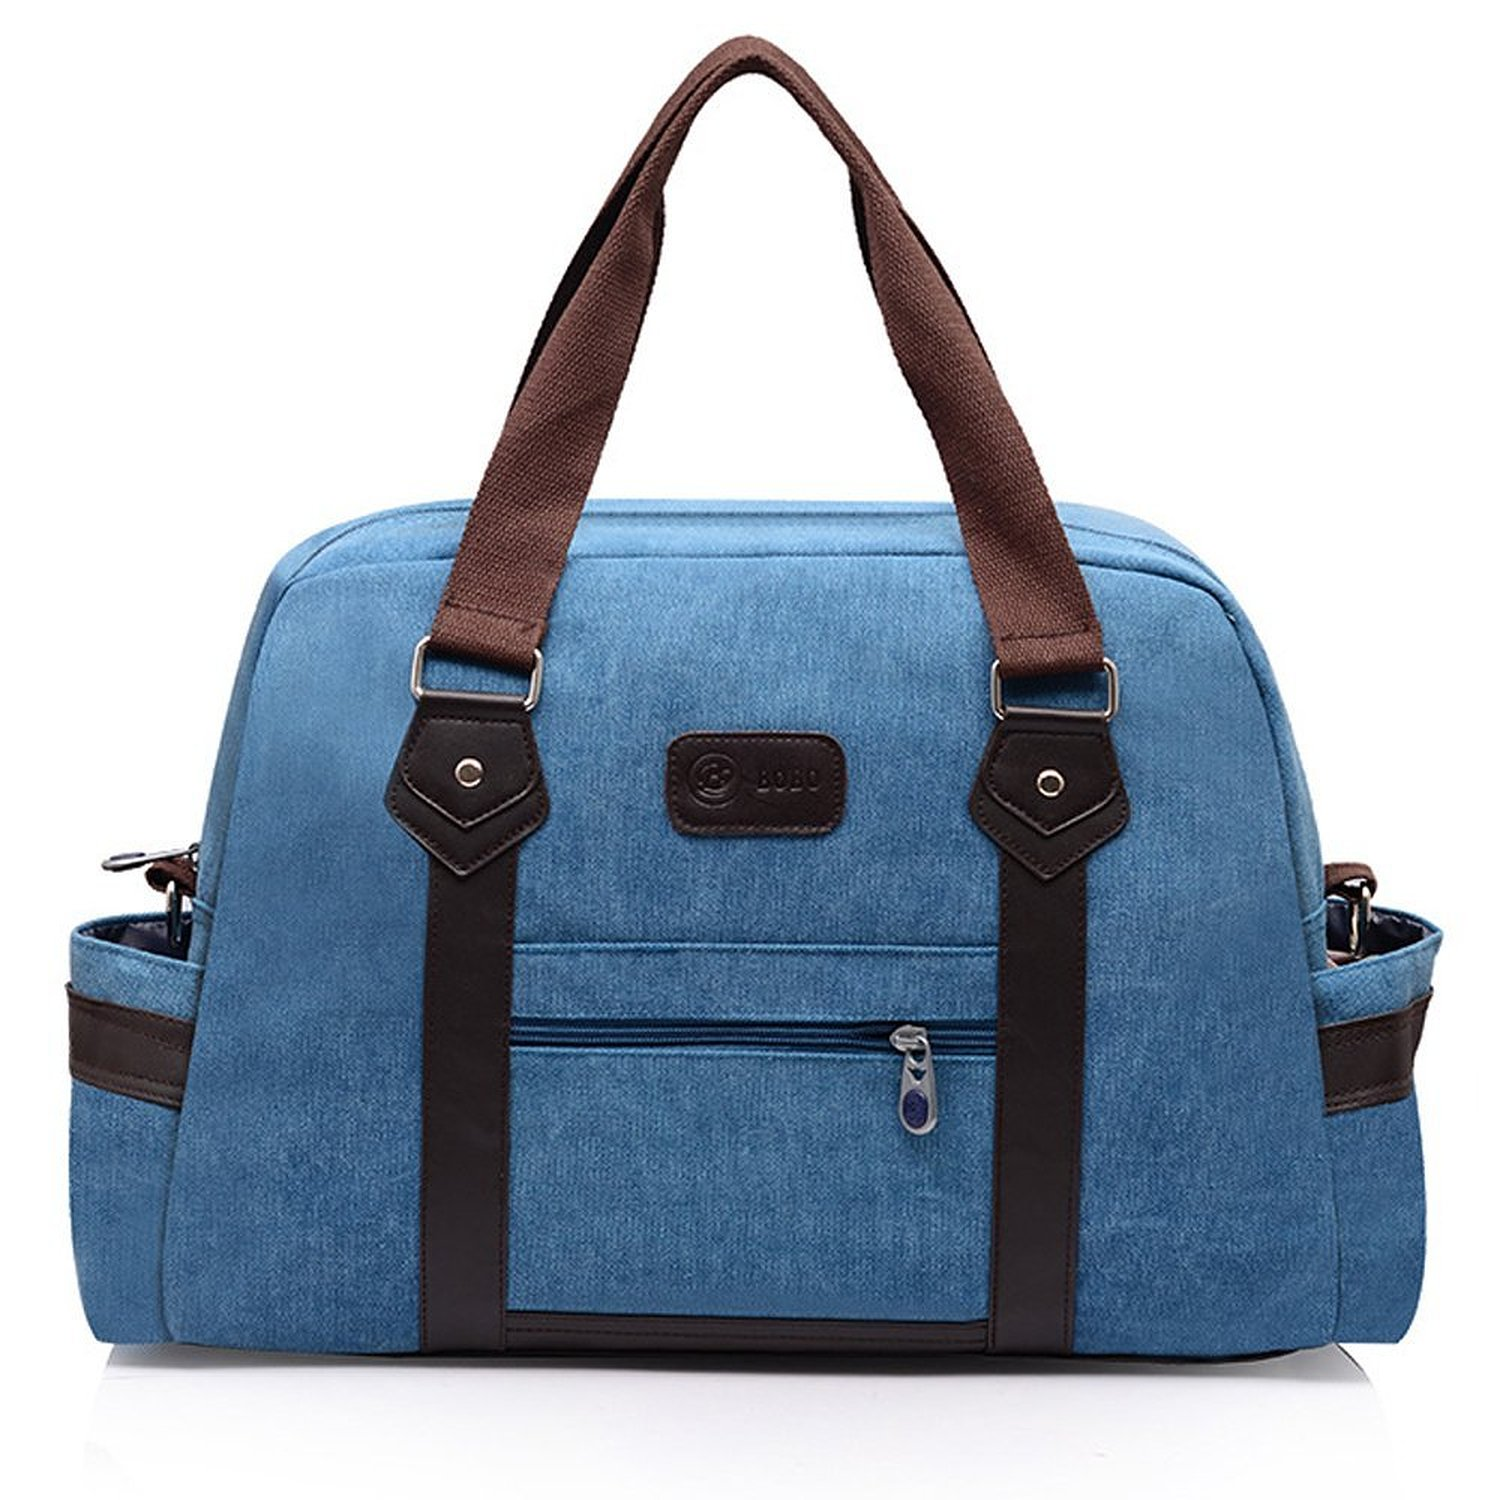 Get Quotations · Hiigoo Canvas Travel Duffle Bag for Men Women Medium Size Weekender  Bag Overnight Bag 7c8913704cf07